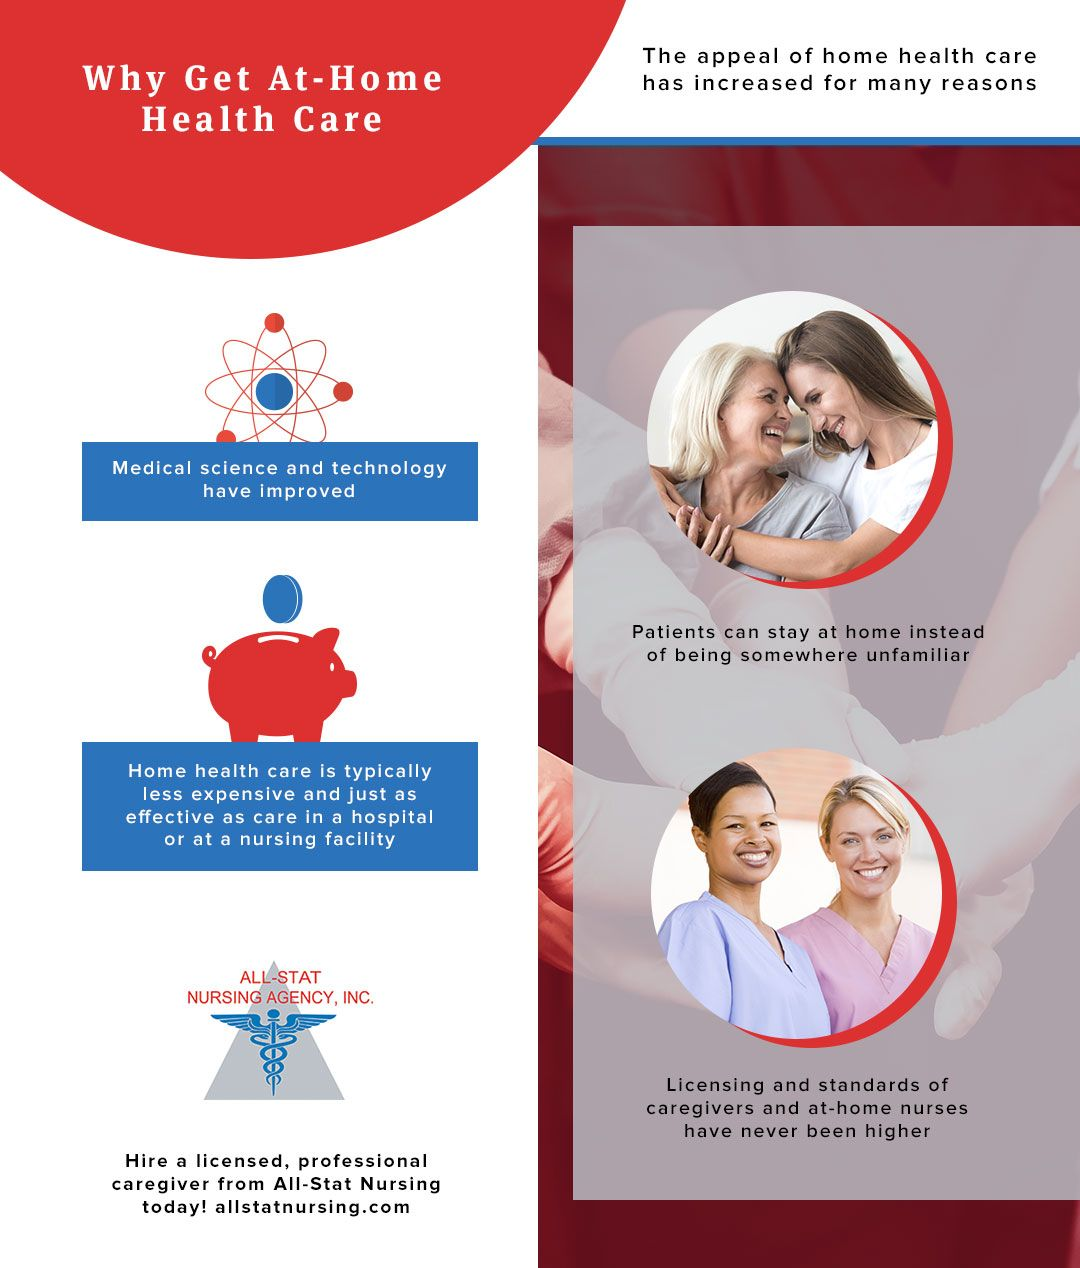 Why-Get-At-Home-Health-Care-Infographic-Recovered.jpg